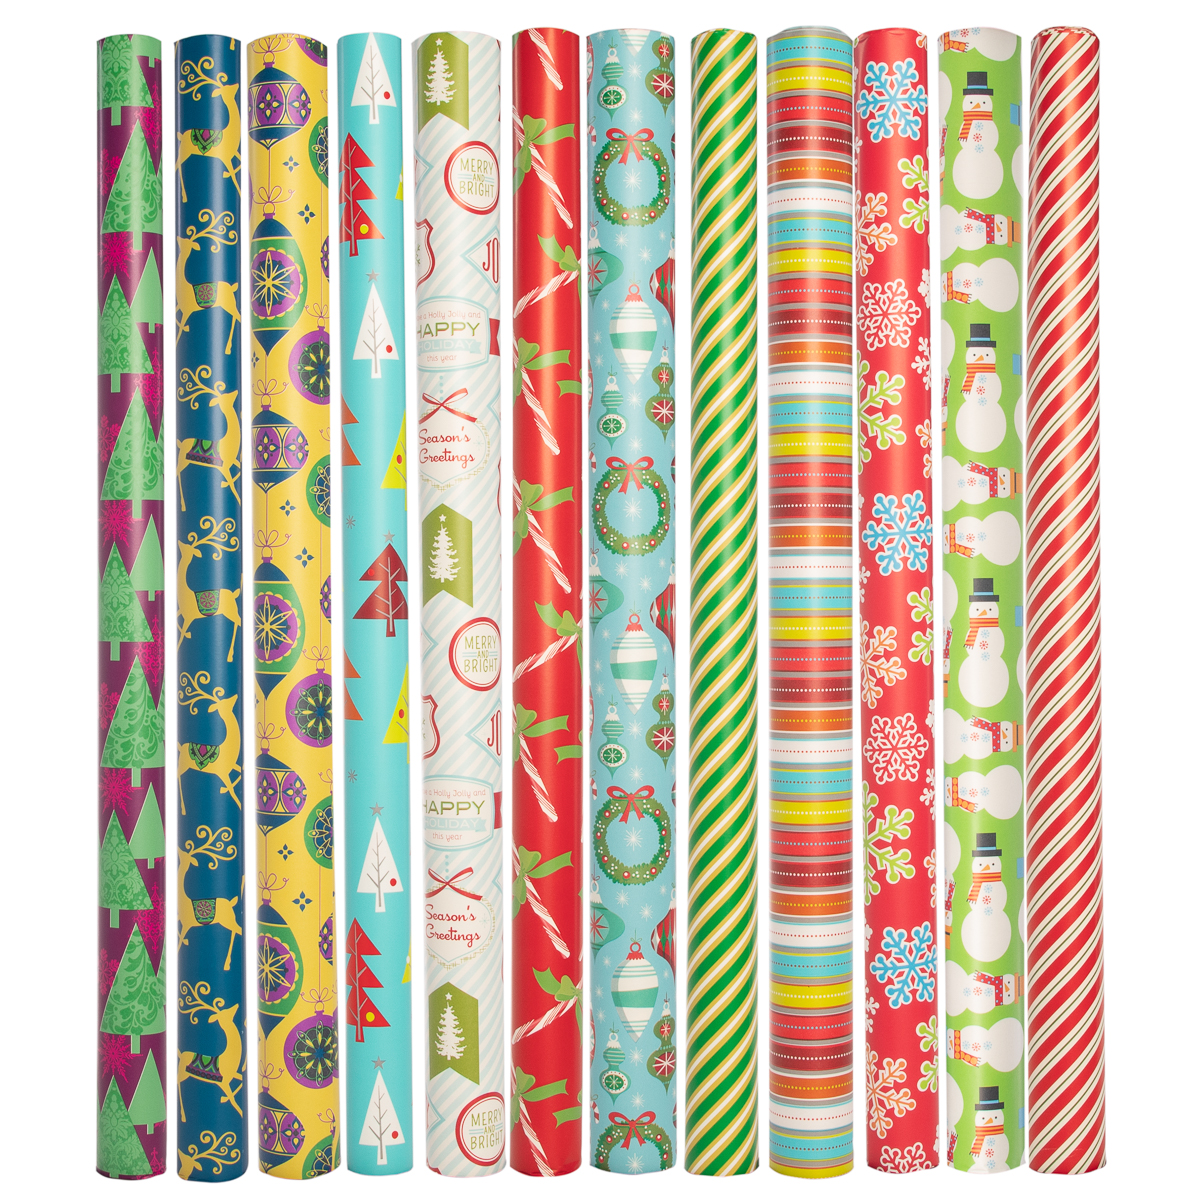 Paper Craft (12 Count) Jumbo Christmas Wrapping Paper Rolls Set for Xmas & Holiday Gifts Presents Bulk Assortment